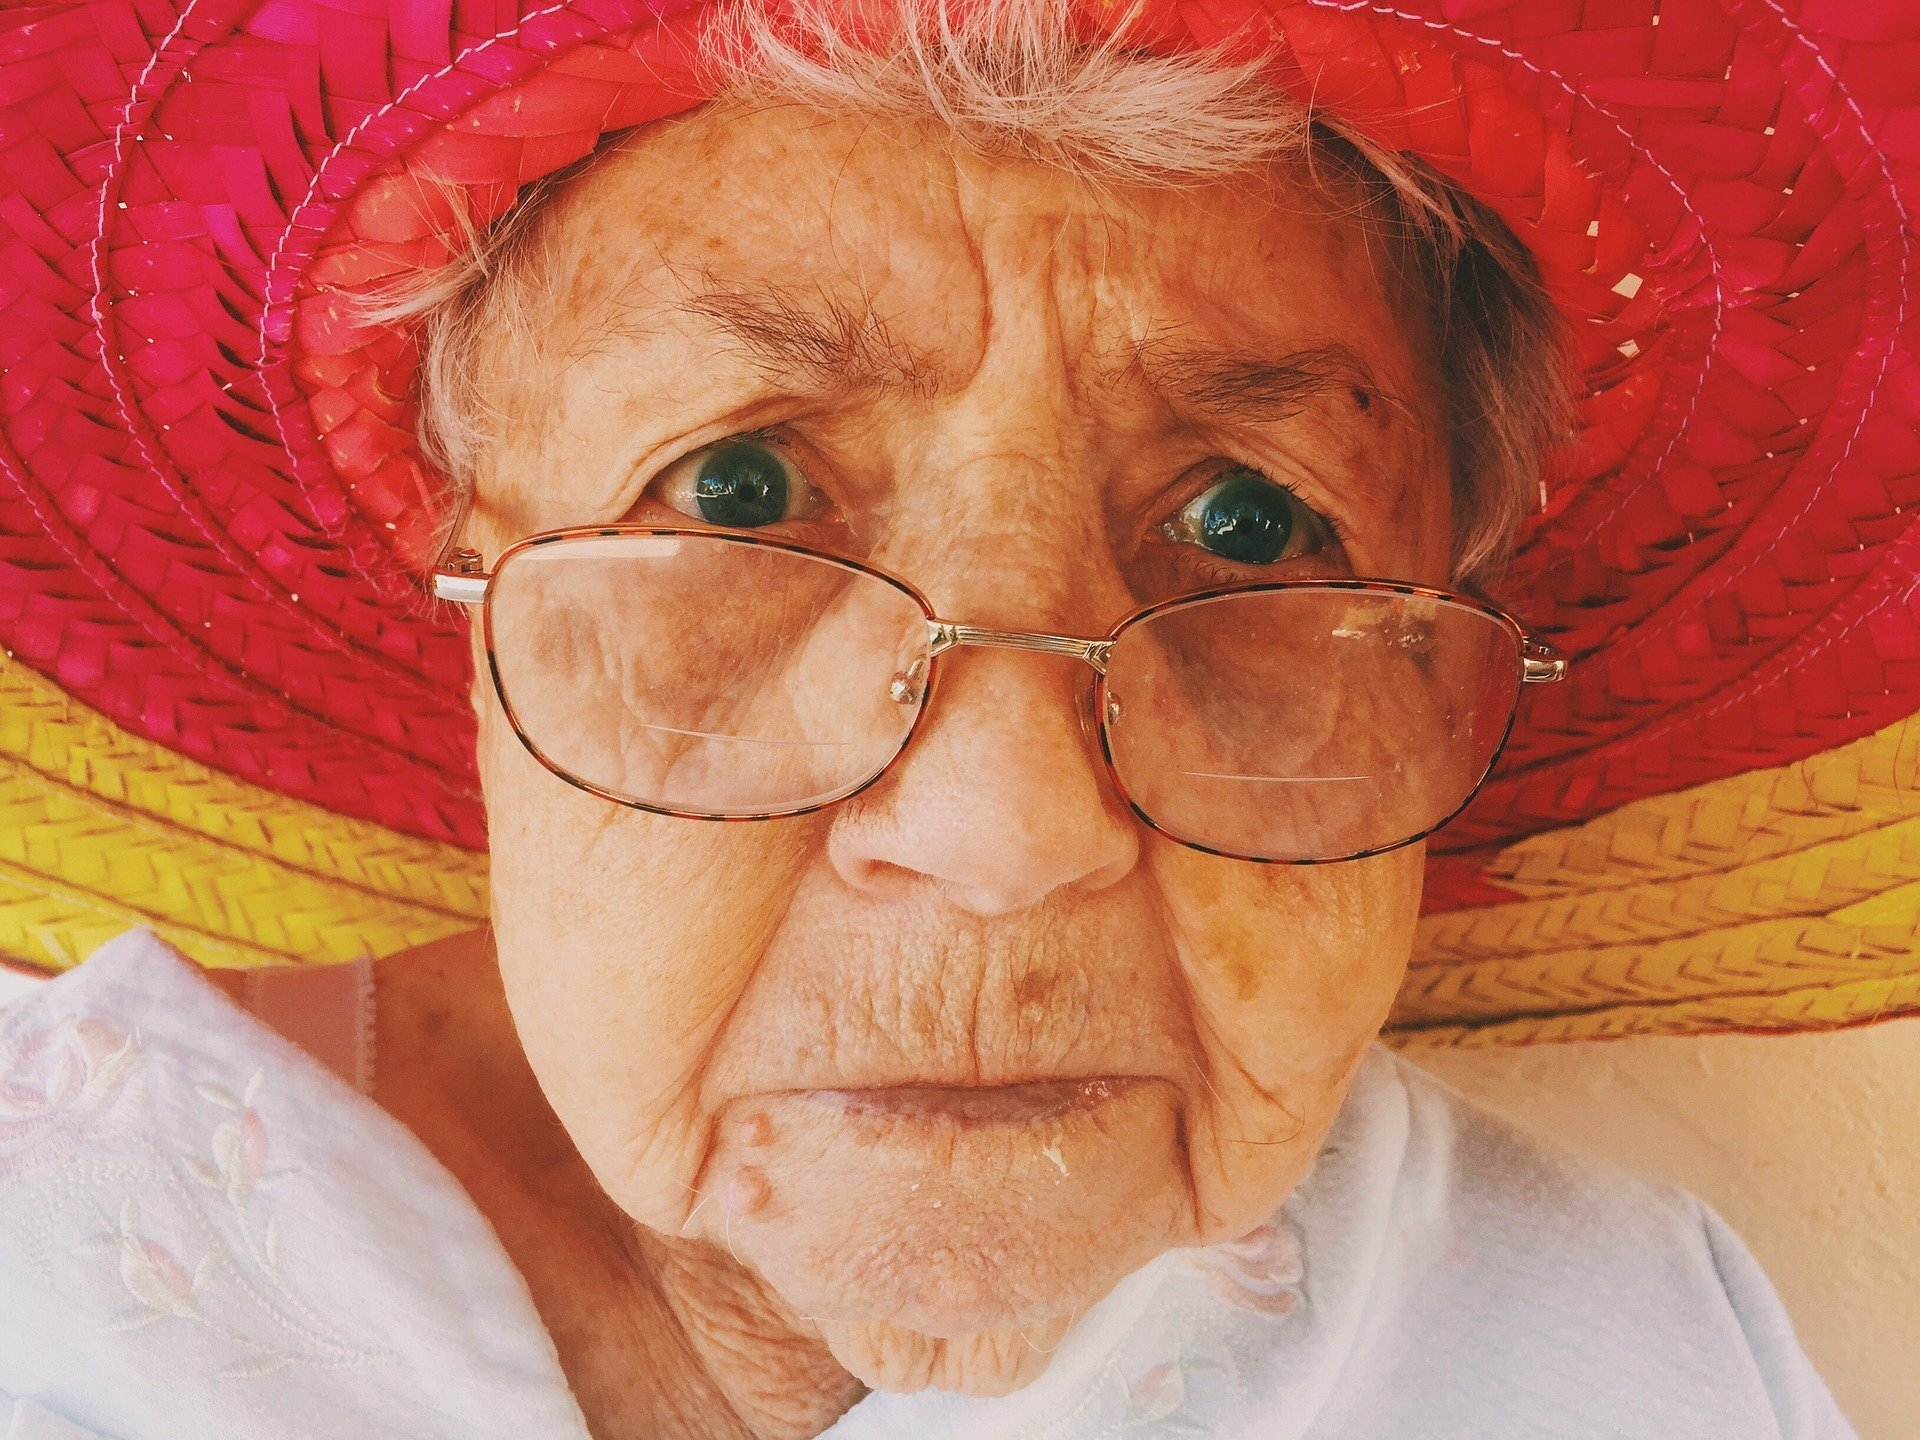 An old woman looking shocked while wearing a colorful hat and glasses   Photo: Pixabay/Free-Photos